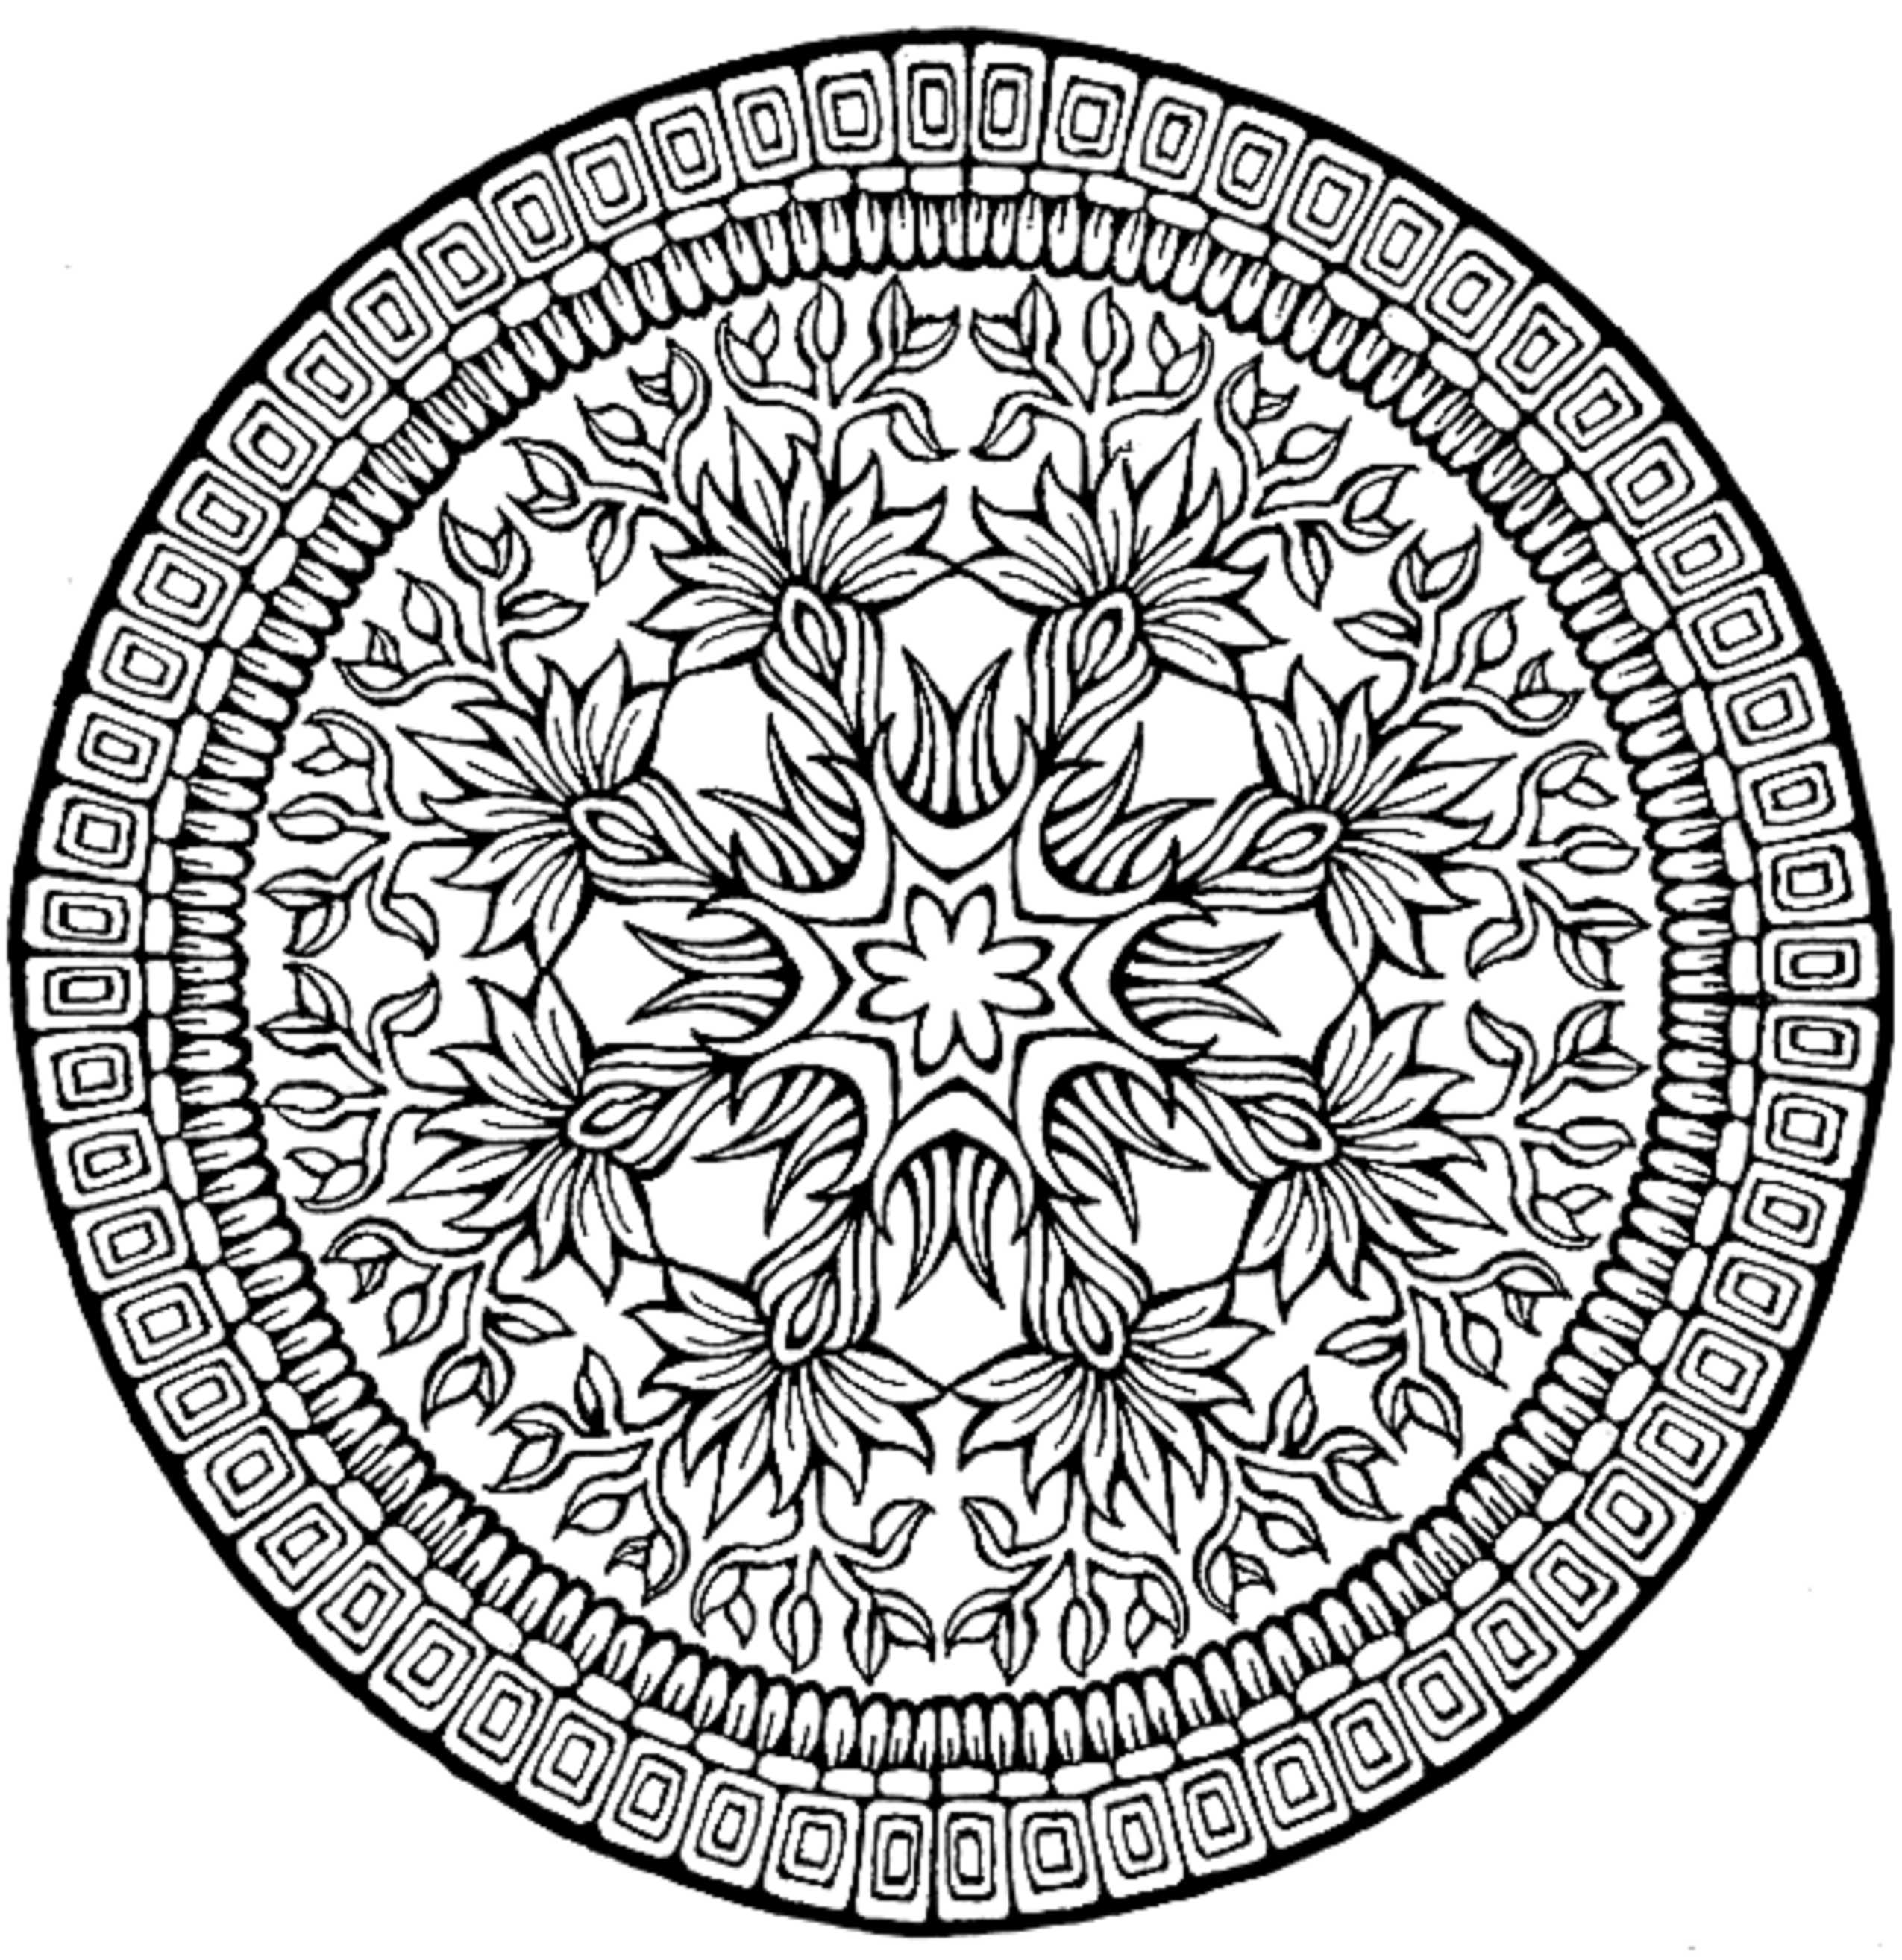 Flower coloring pages for adults - Complex Flower Coloring Pages For Adults